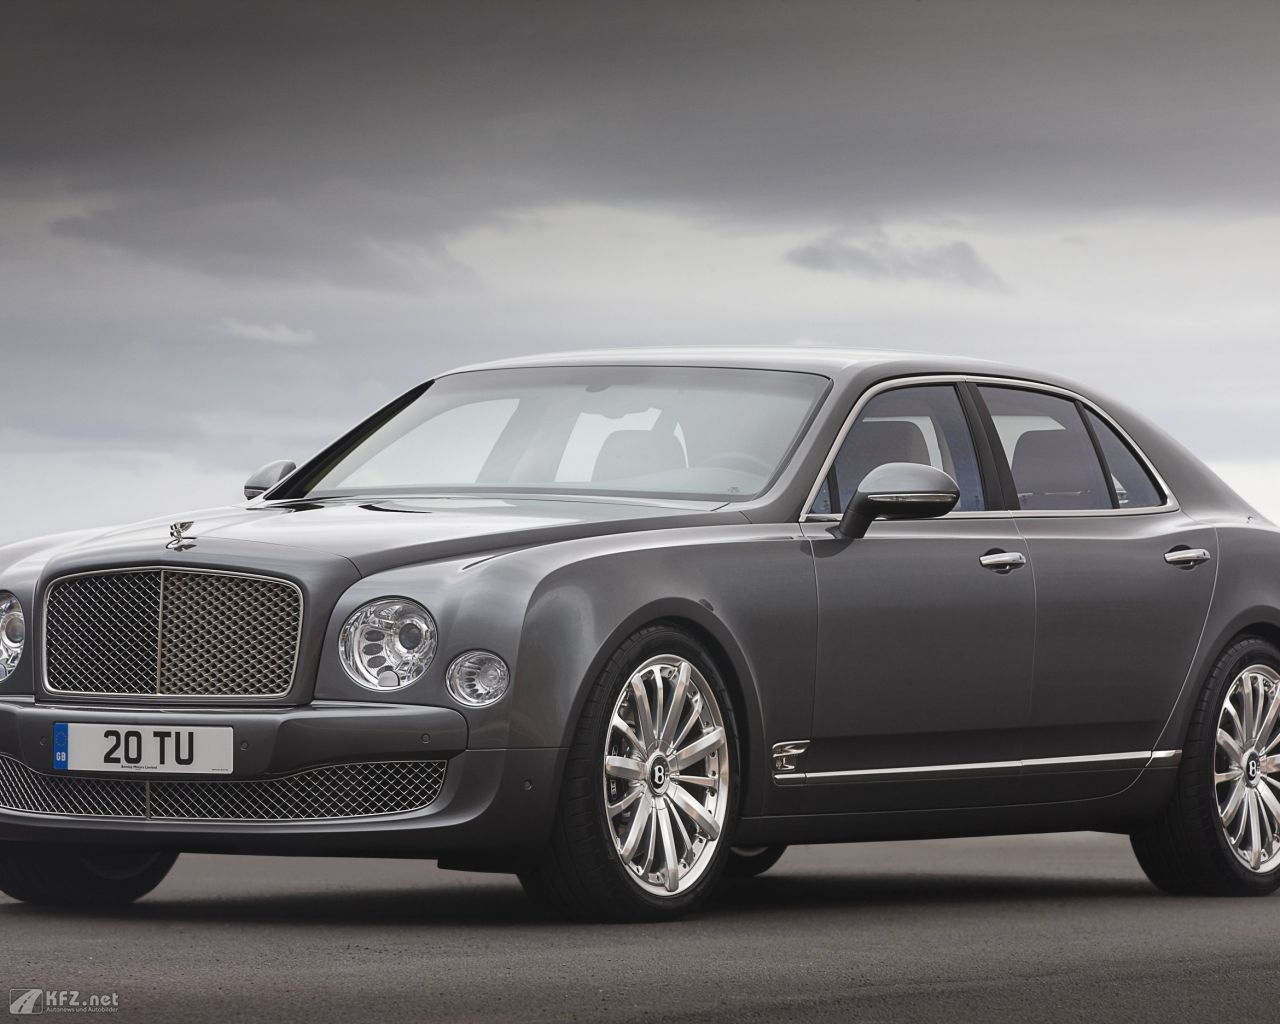 bentley-mulsanne-1280x1024-20